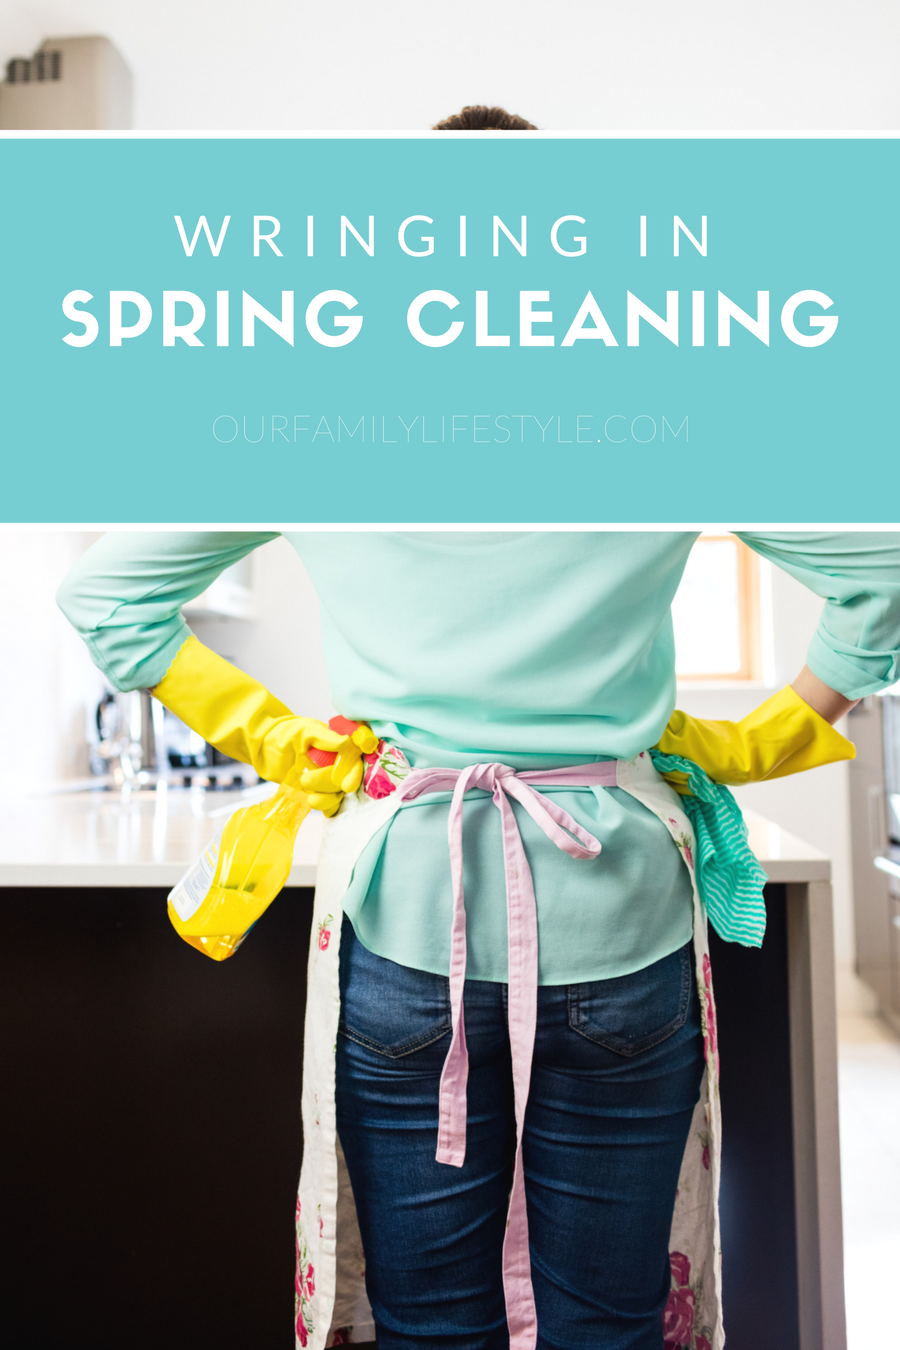 wringing in spring cleaning tips